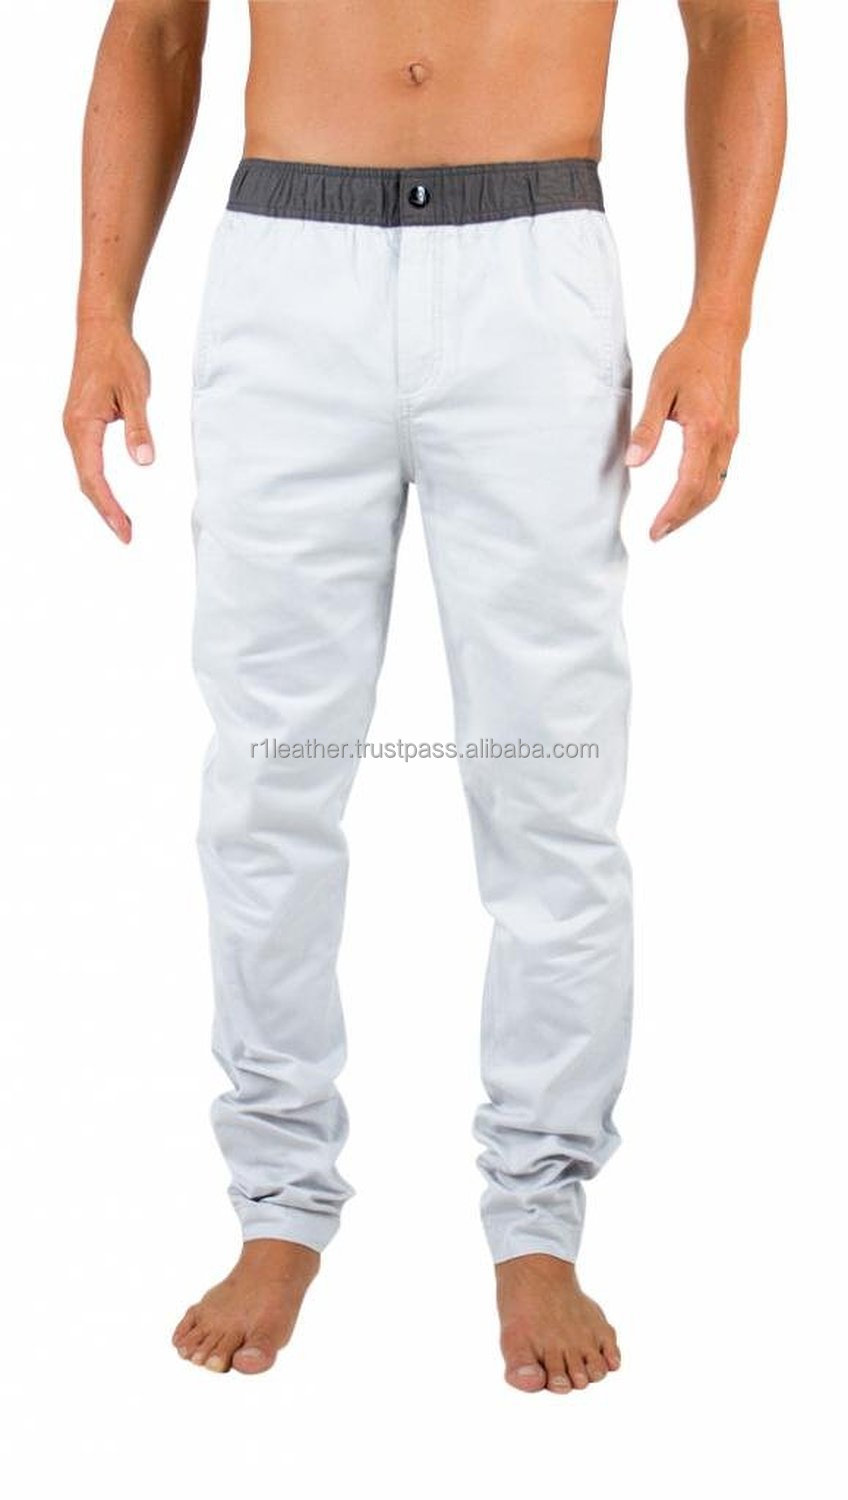 Customized new products cotton men jogger pants